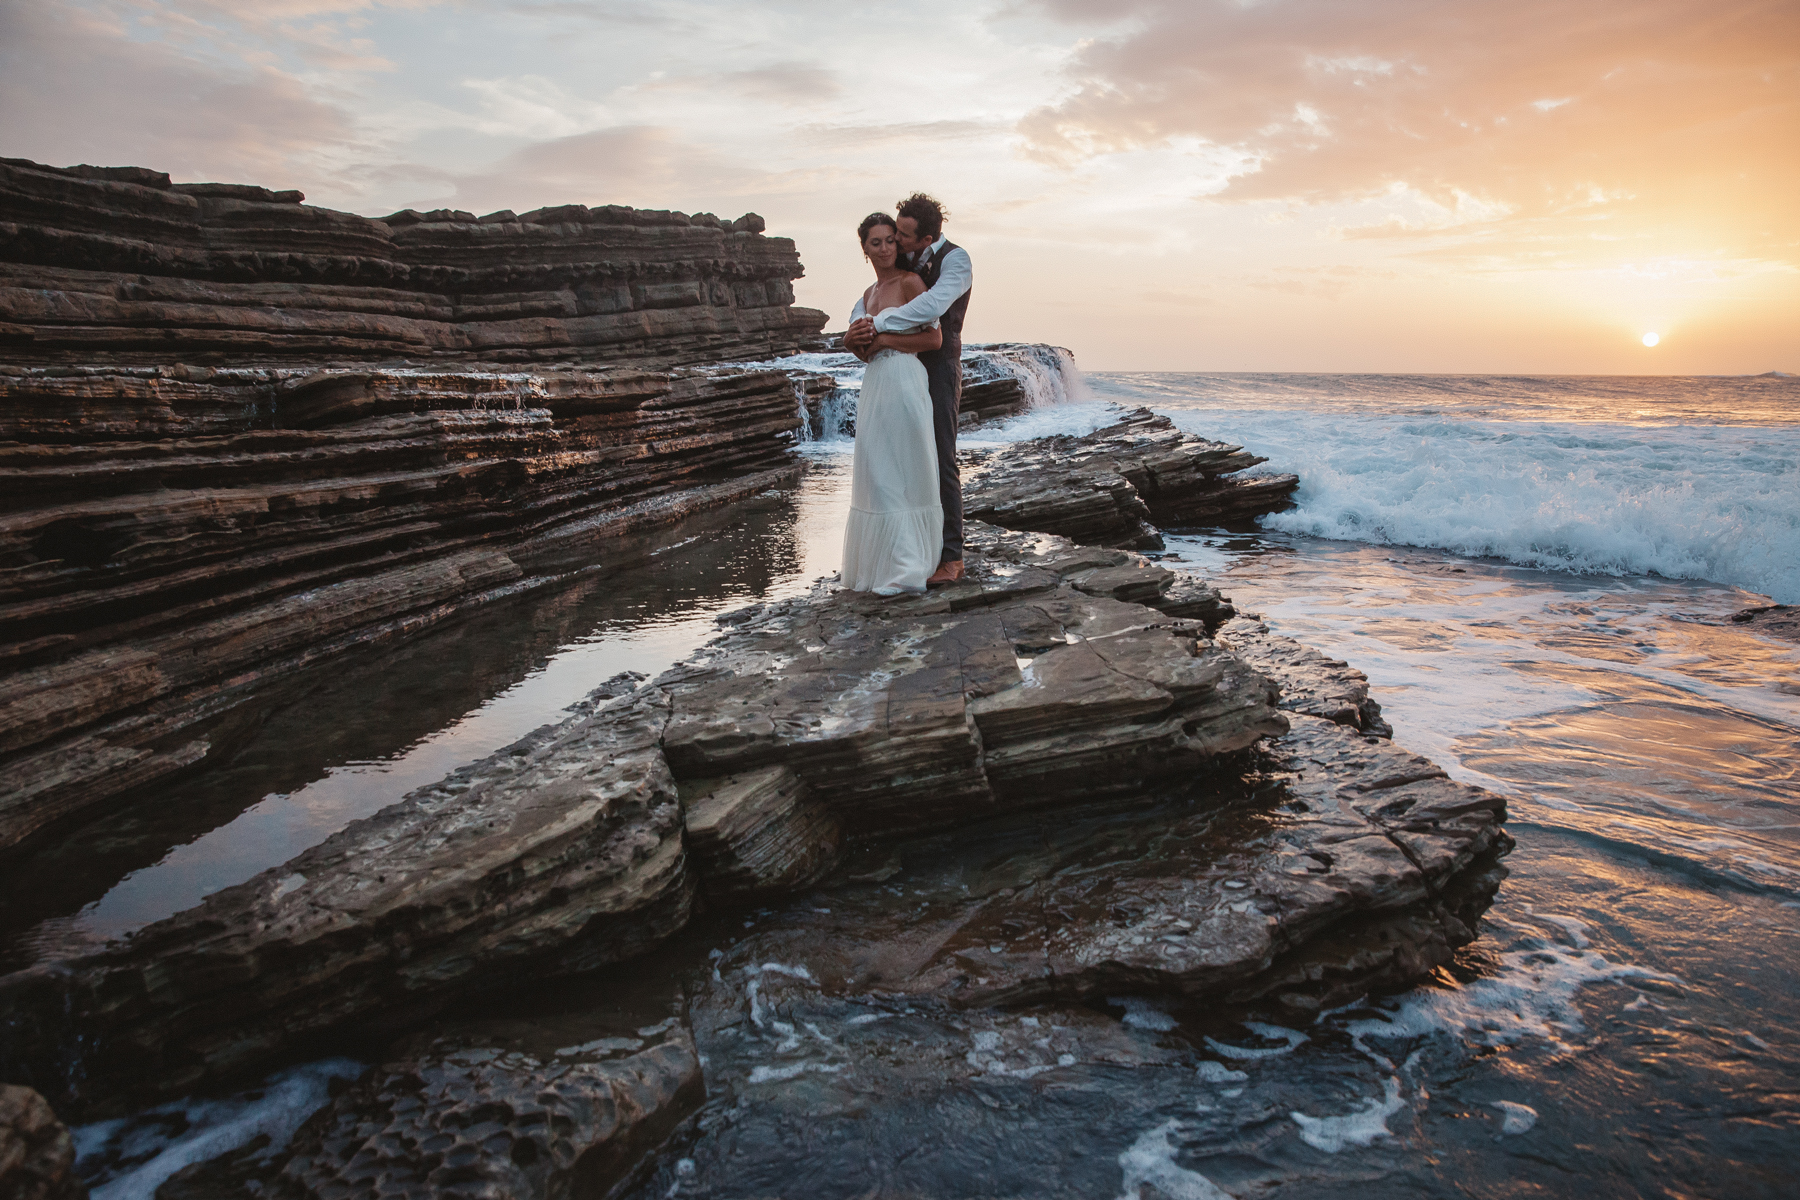 sunset wedding photos bride and groom embracing on oceanic rock